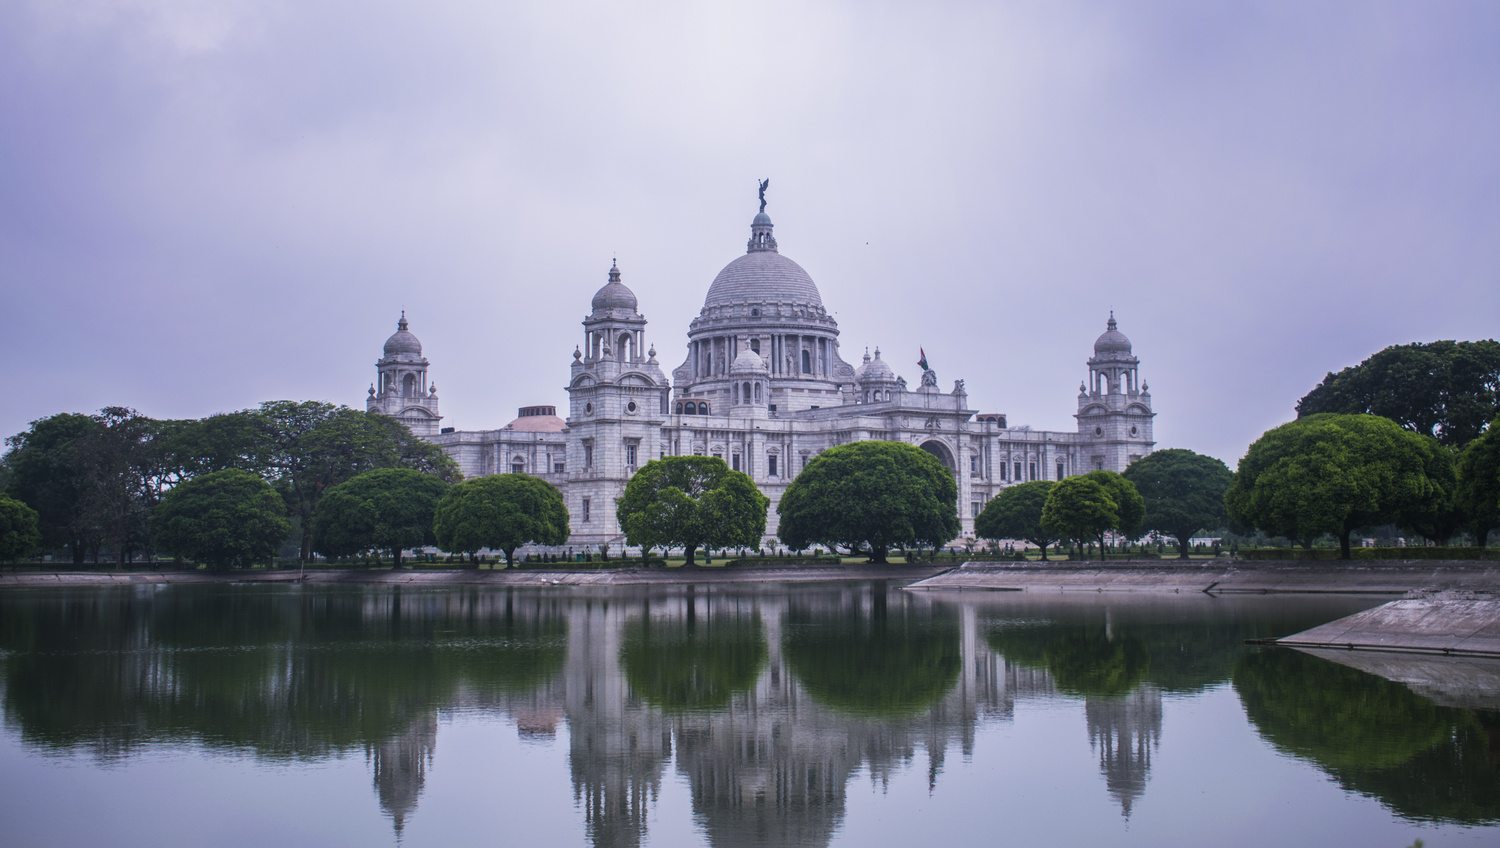 THE UNFORGOTTEN VICTORIA by Nilav Bose